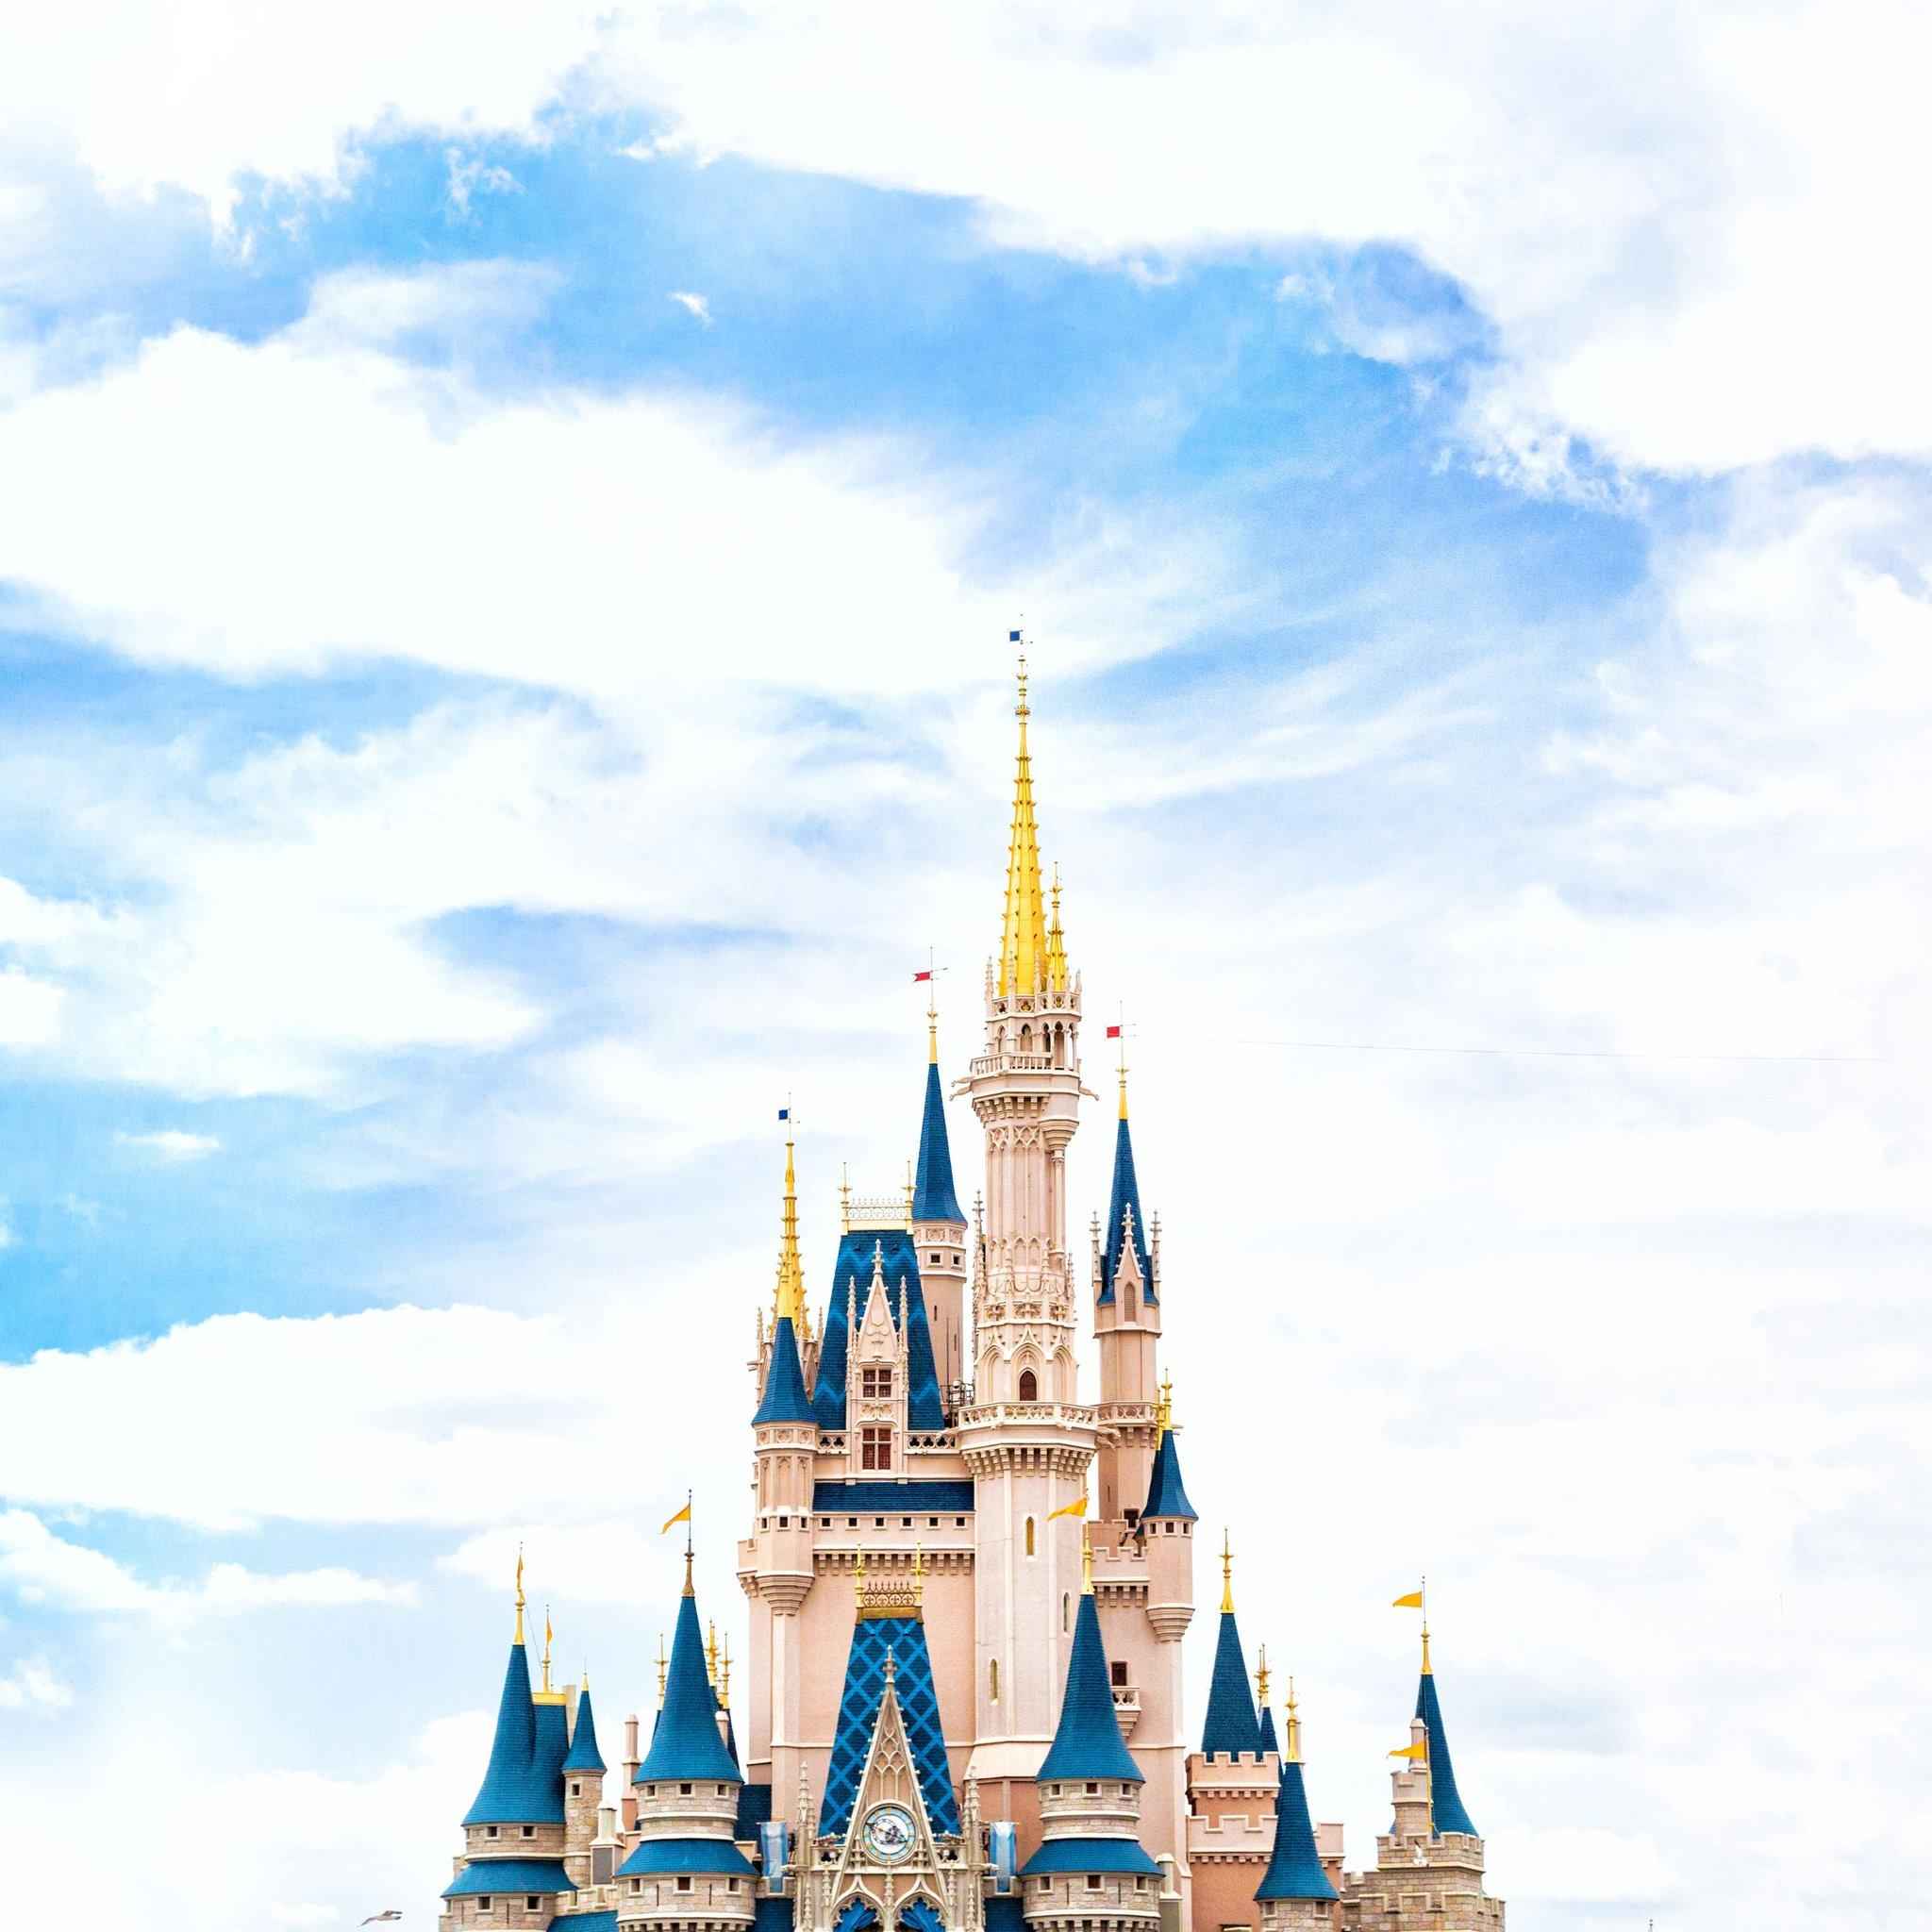 disney world vacation 2018 disney's magic your way vacation package the magic your way package includes a resort stay at a walt disney world resort ® and a magic your way base ticket that gives each member of your travel party entry to one theme park every ticket day.